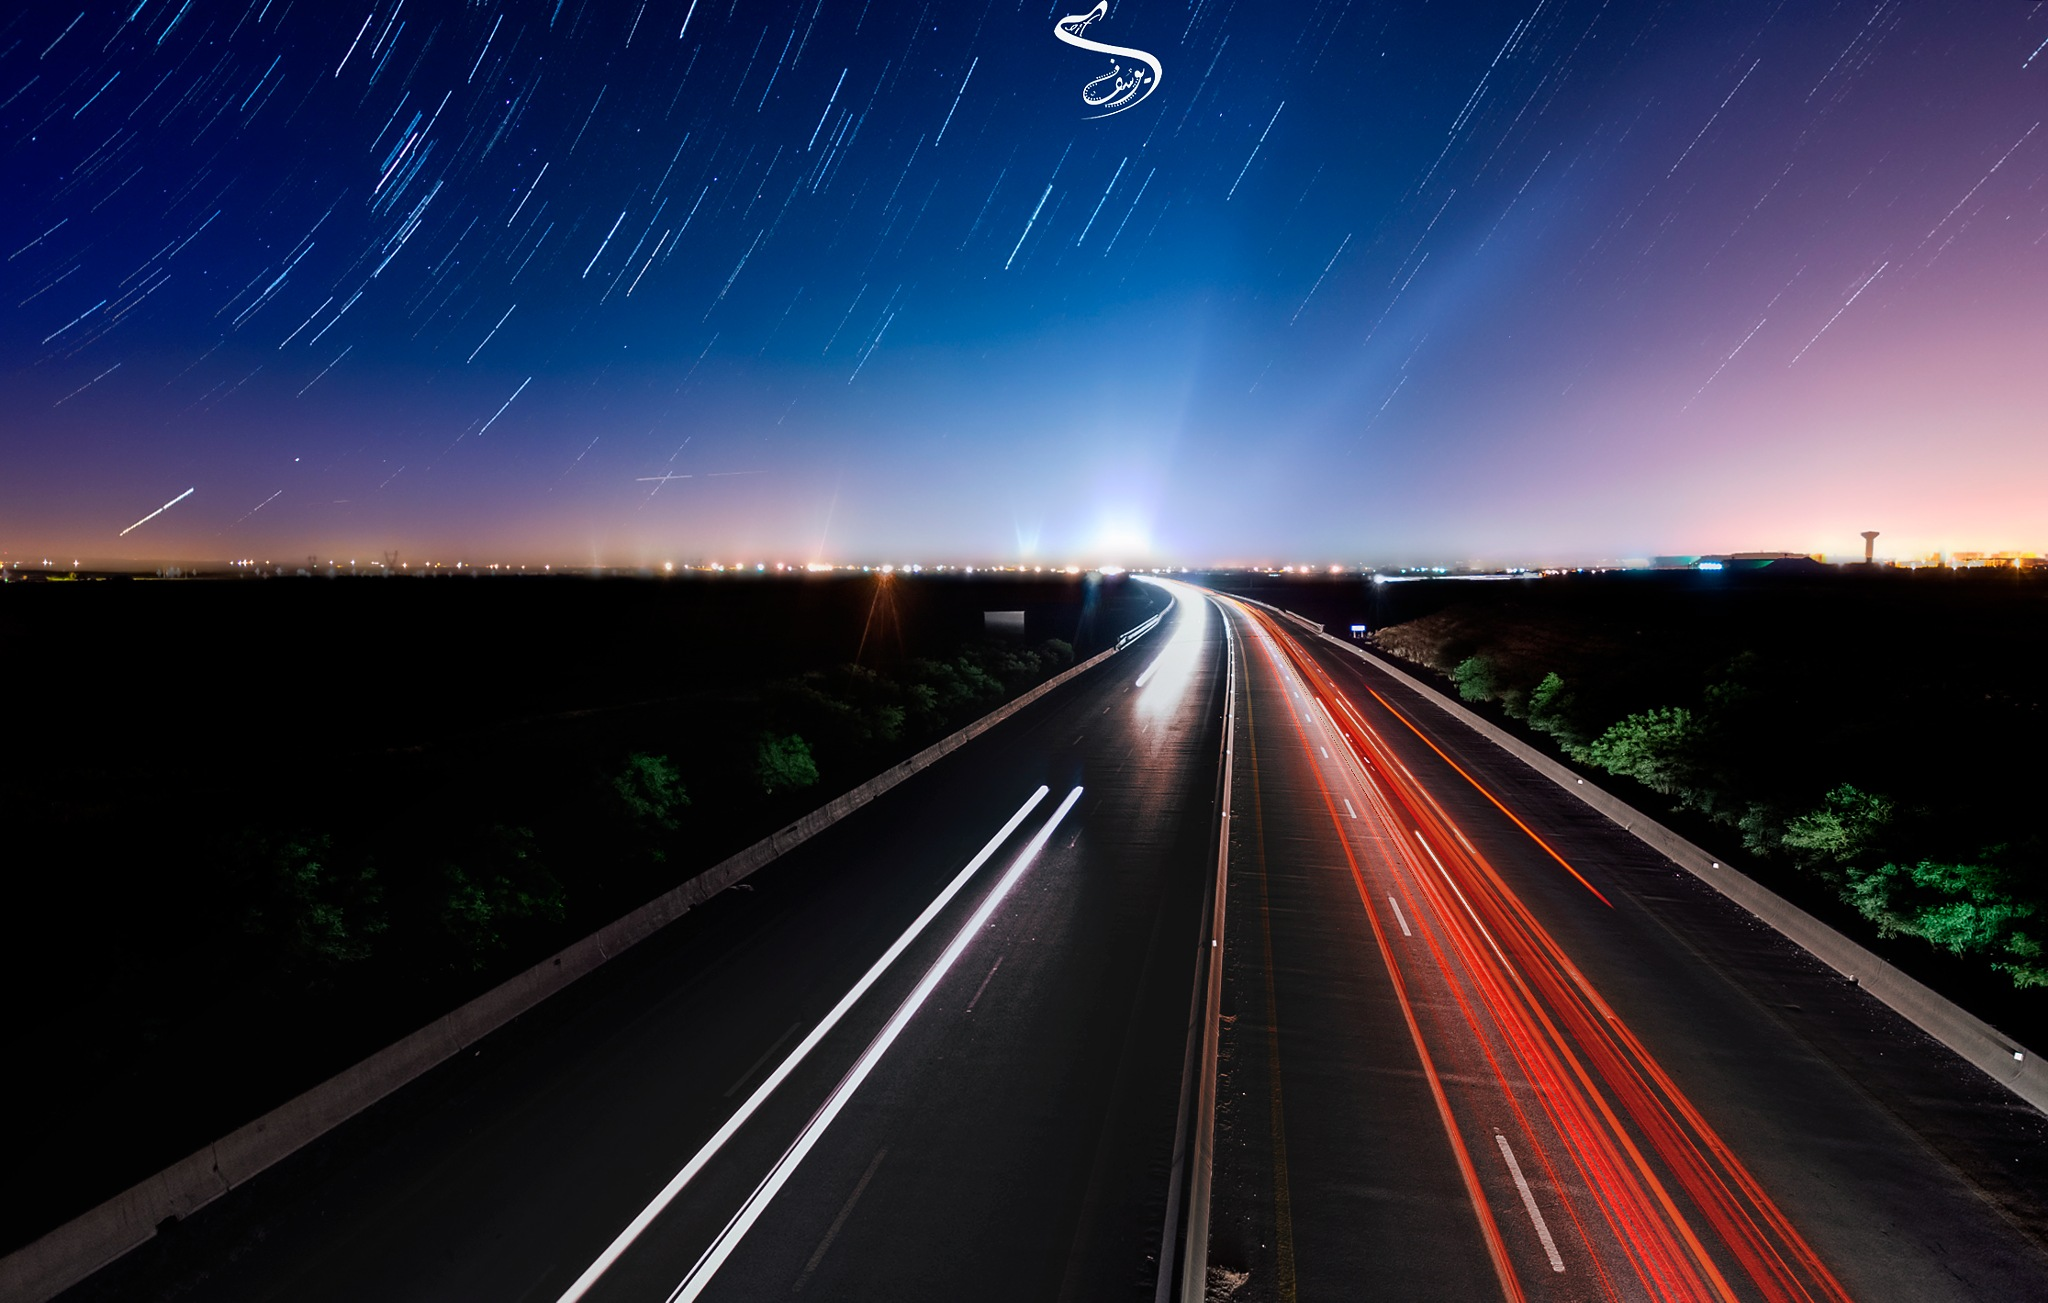 star trail in highway  by Dif Youssouf